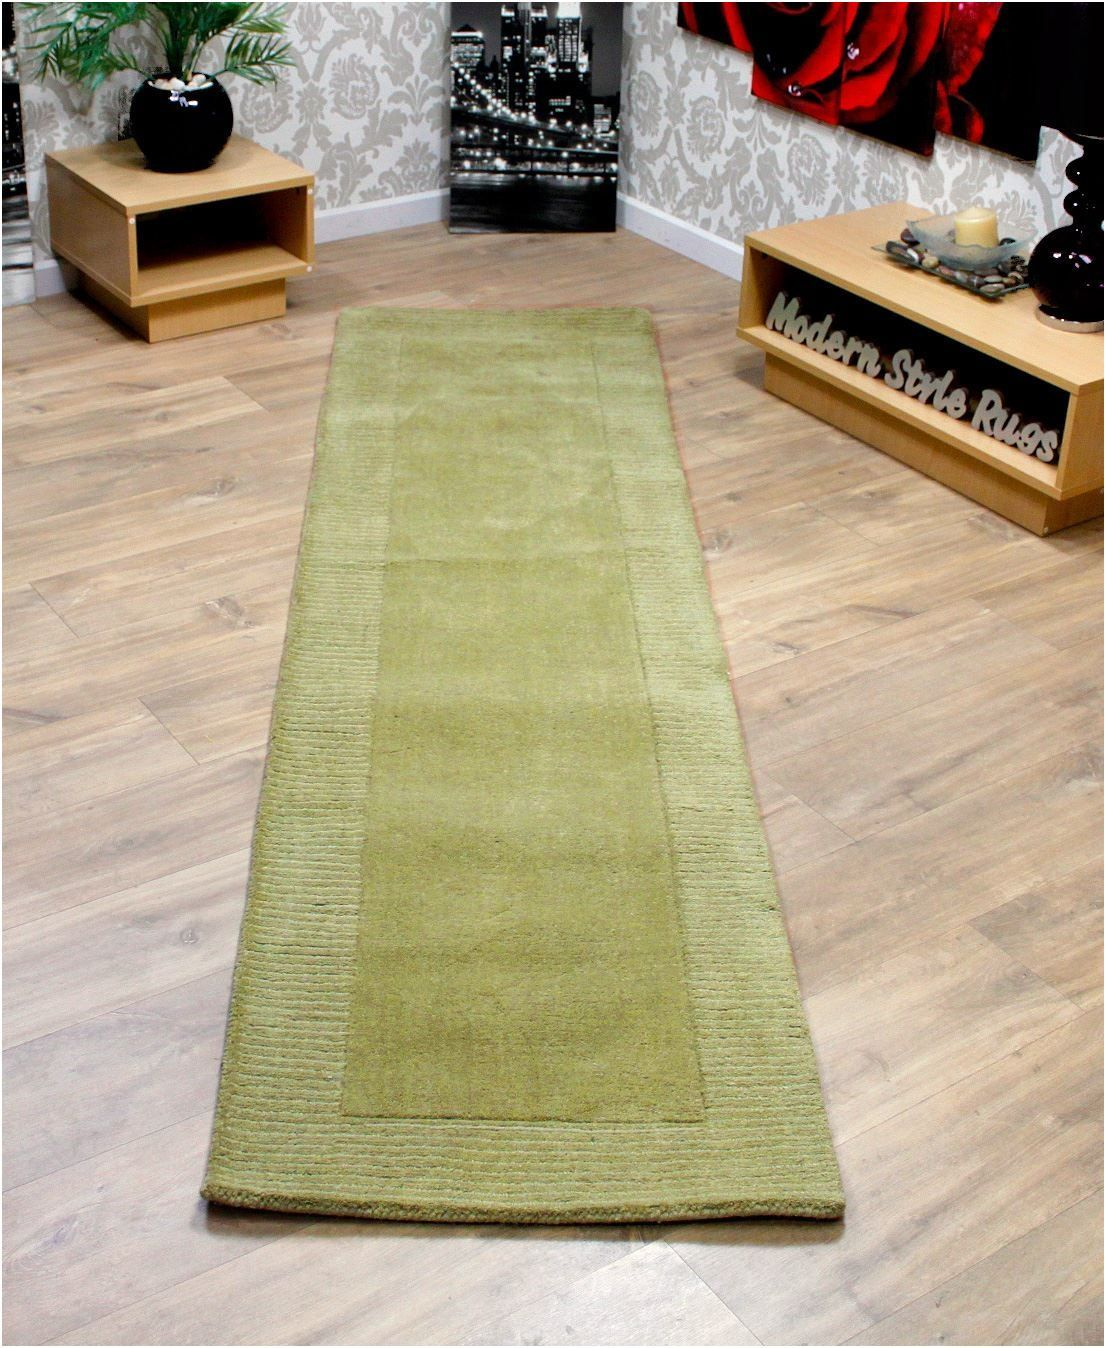 10 Trend Green Kitchen Rug Photograph Green Kitchen Photograph Rug Trend Green Kitchen Rug Kitchen Rugs Washable Kitchen Rug